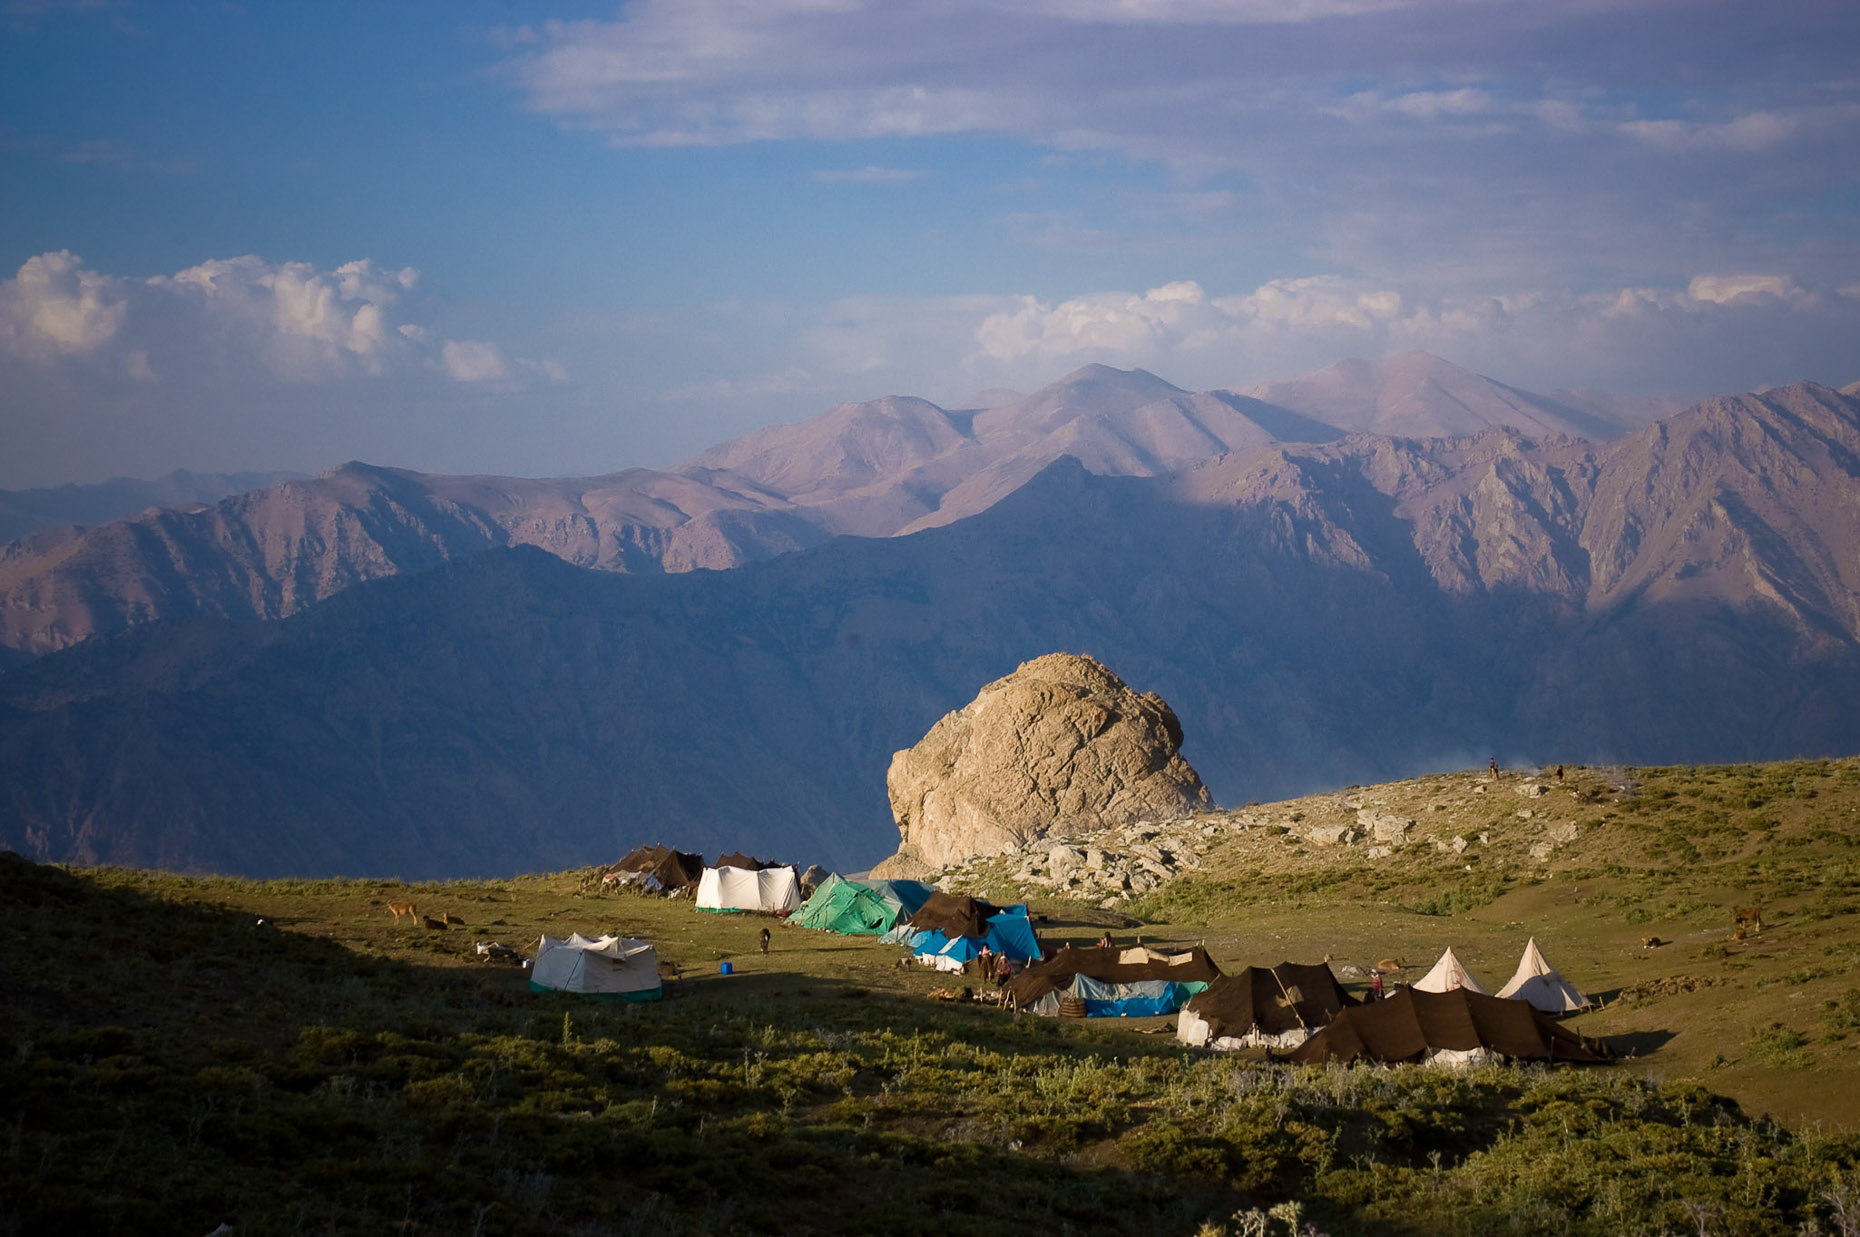 Landscape image of high remote Kurdish nomadic village near Syrian Boarder, Turkey.